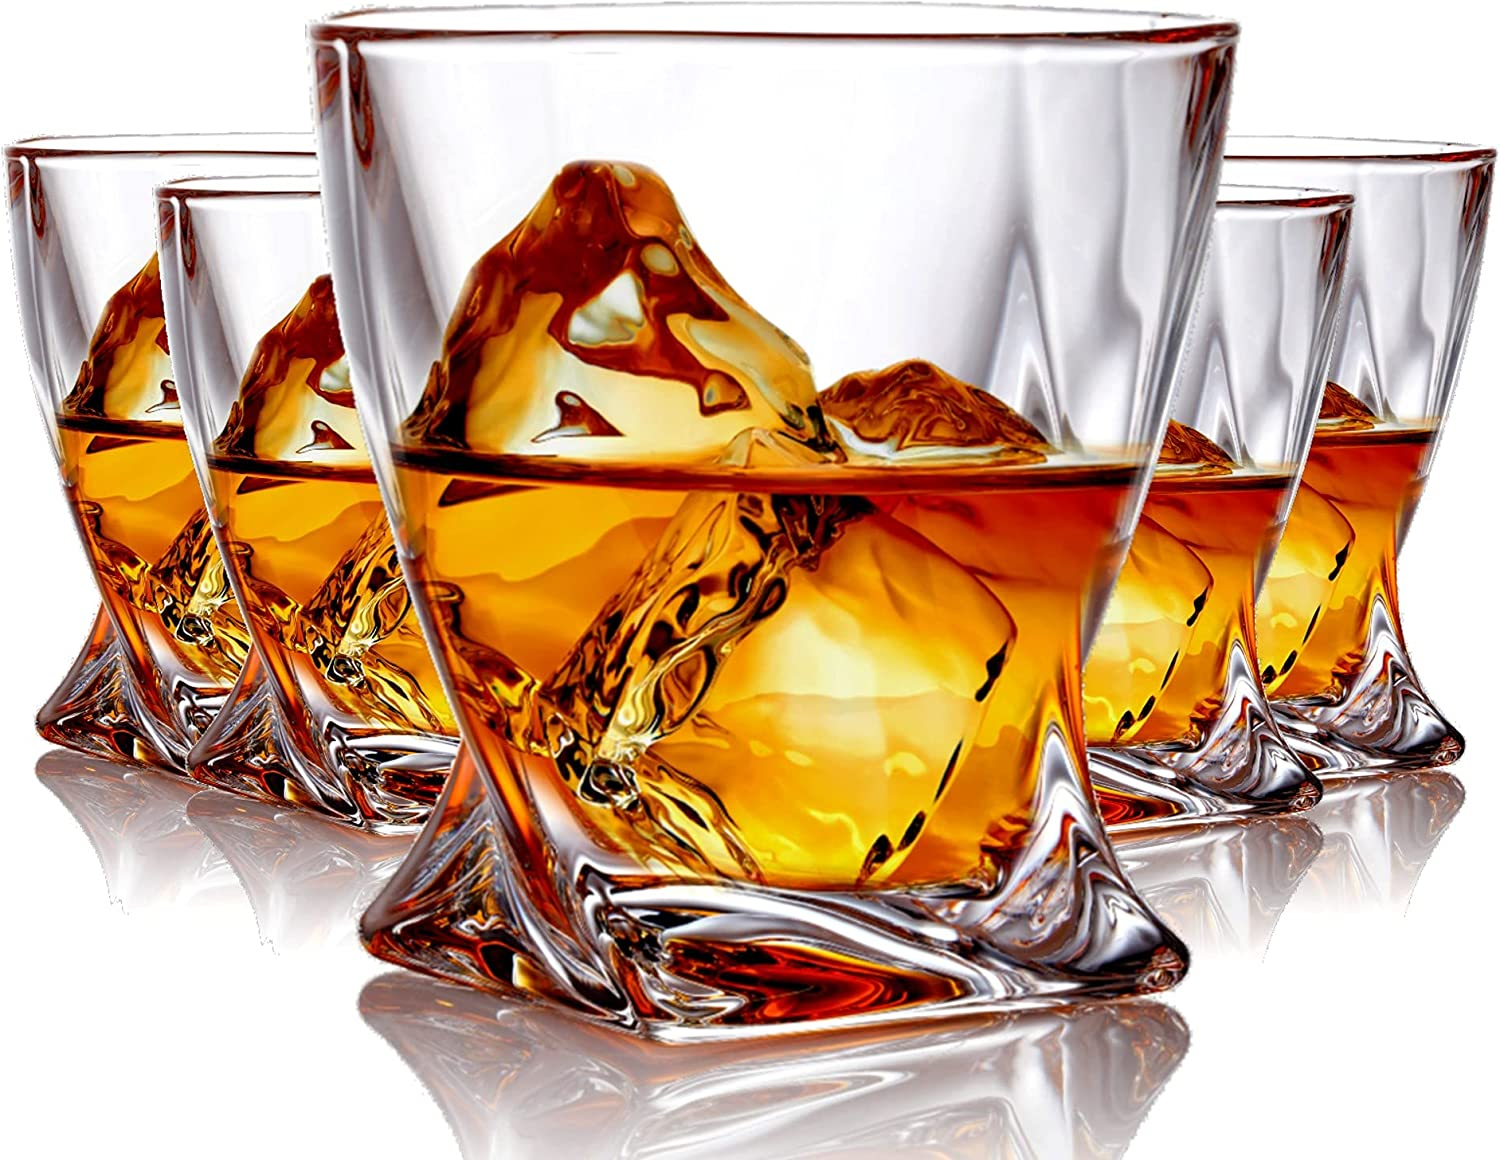 Whiskey Glasses set of Free Ranking TOP10 shipping 6 Crystal Fashioned Old Rock Glass Scotch